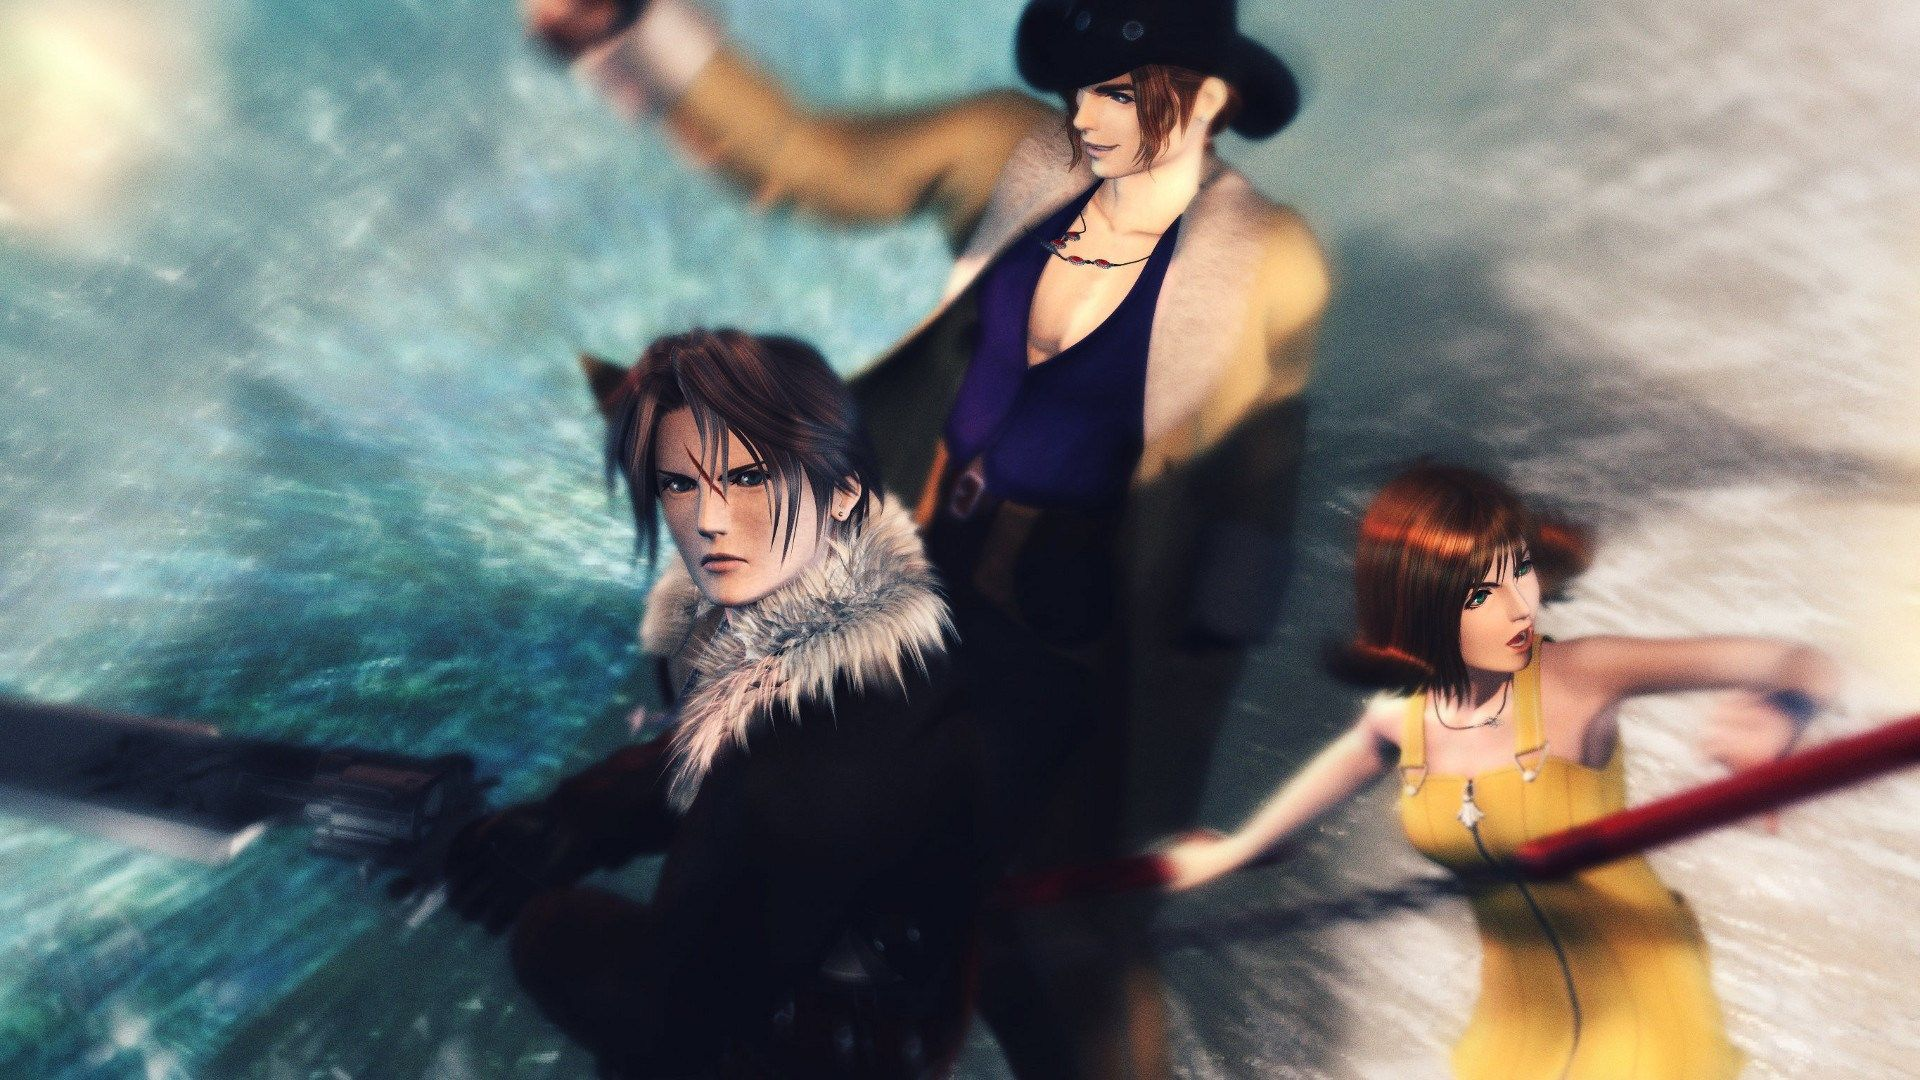 1920x1080 Free Wallpaper And Screensavers For Final Fantasy Viii